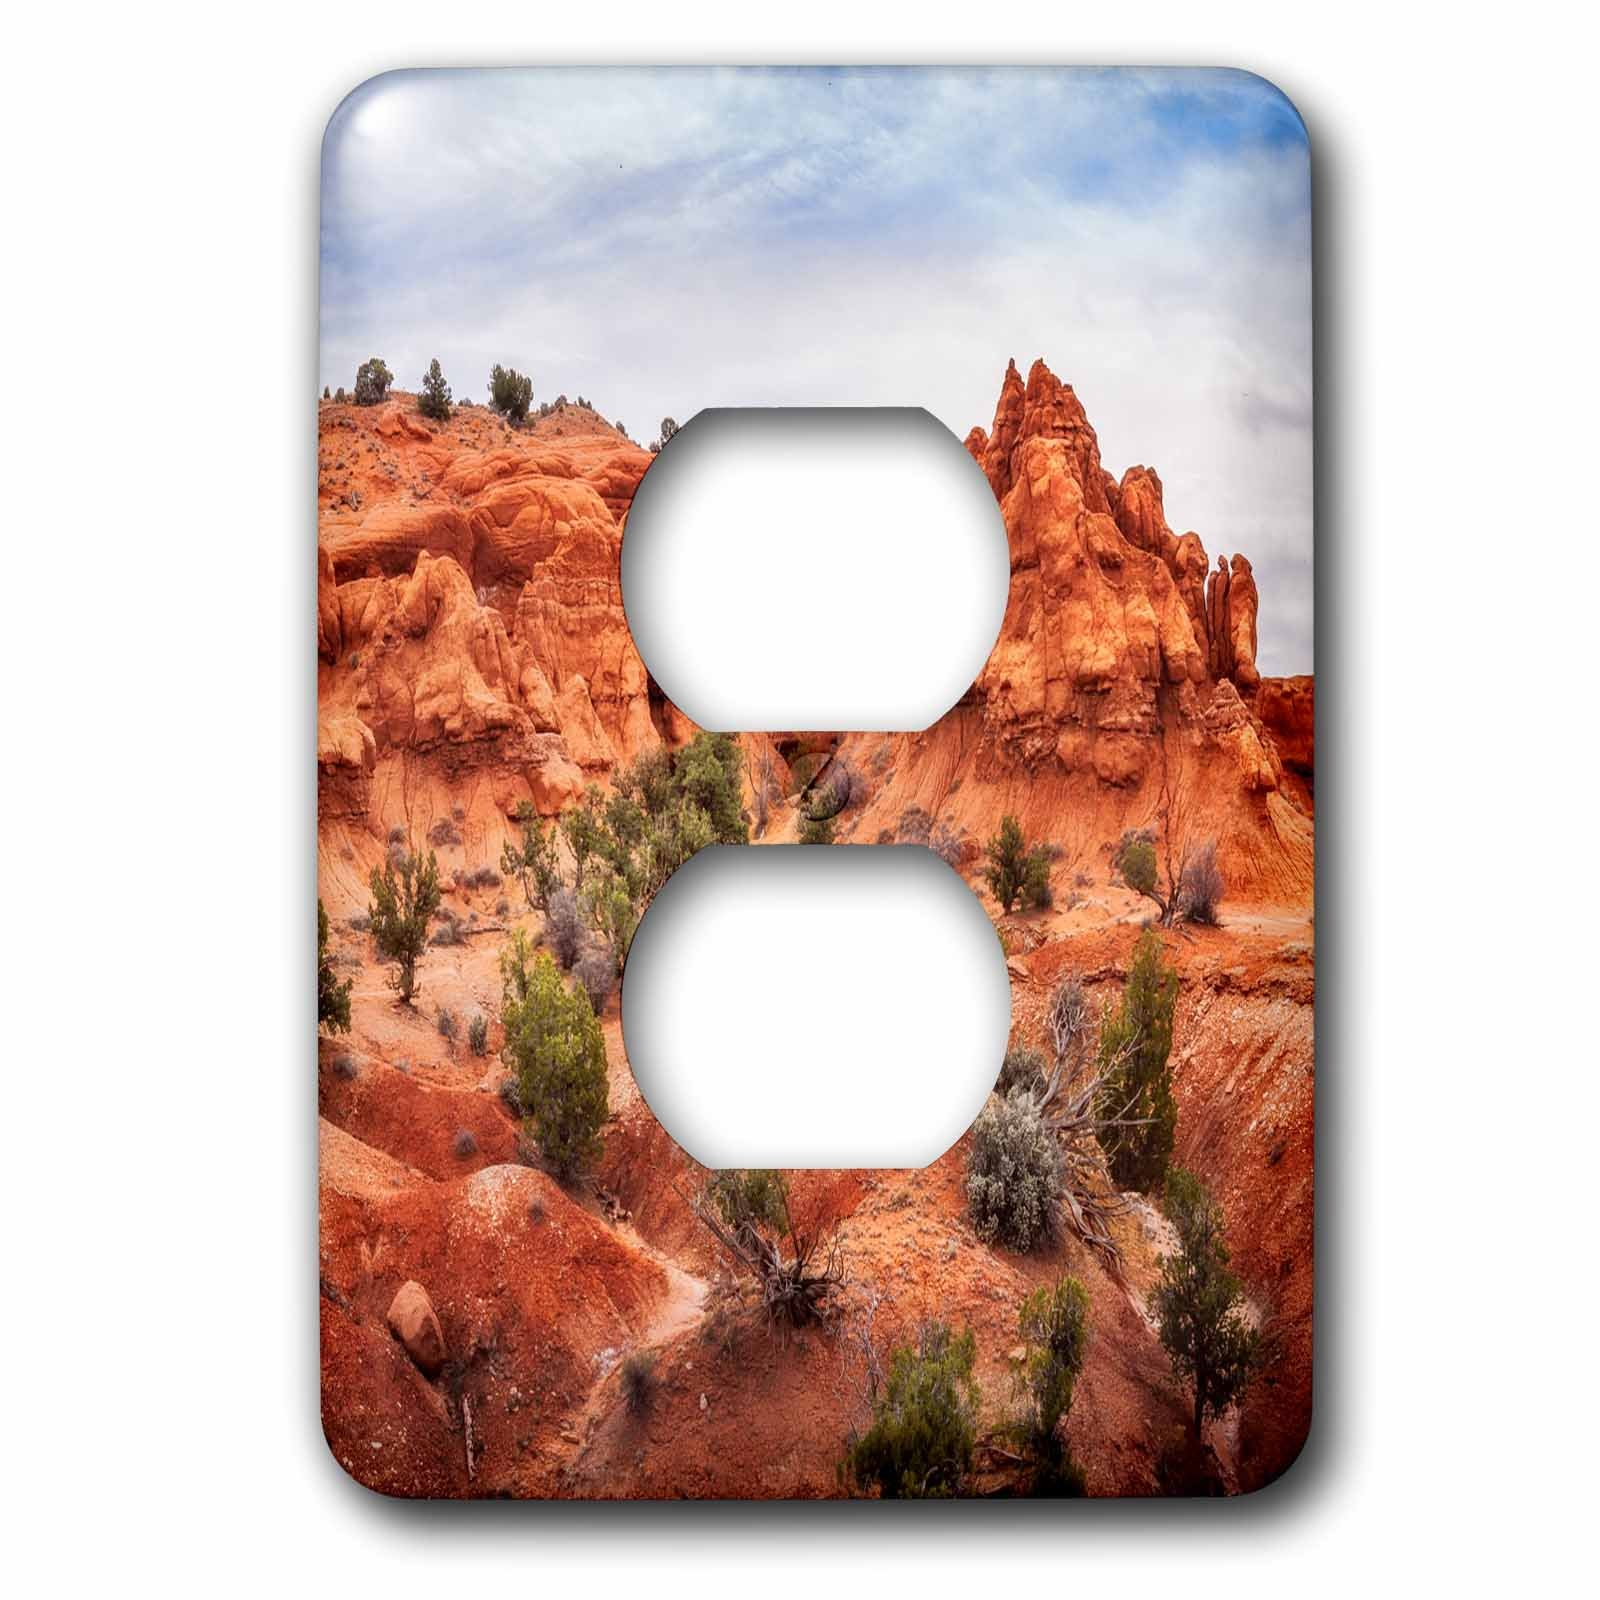 3dRose DanielaPhotography - Landscape, Nature - Natural Arch in Kodachrome Basin State Park, Utah, USA - Light Switch Covers - 2 plug outlet cover (lsp_282035_6)